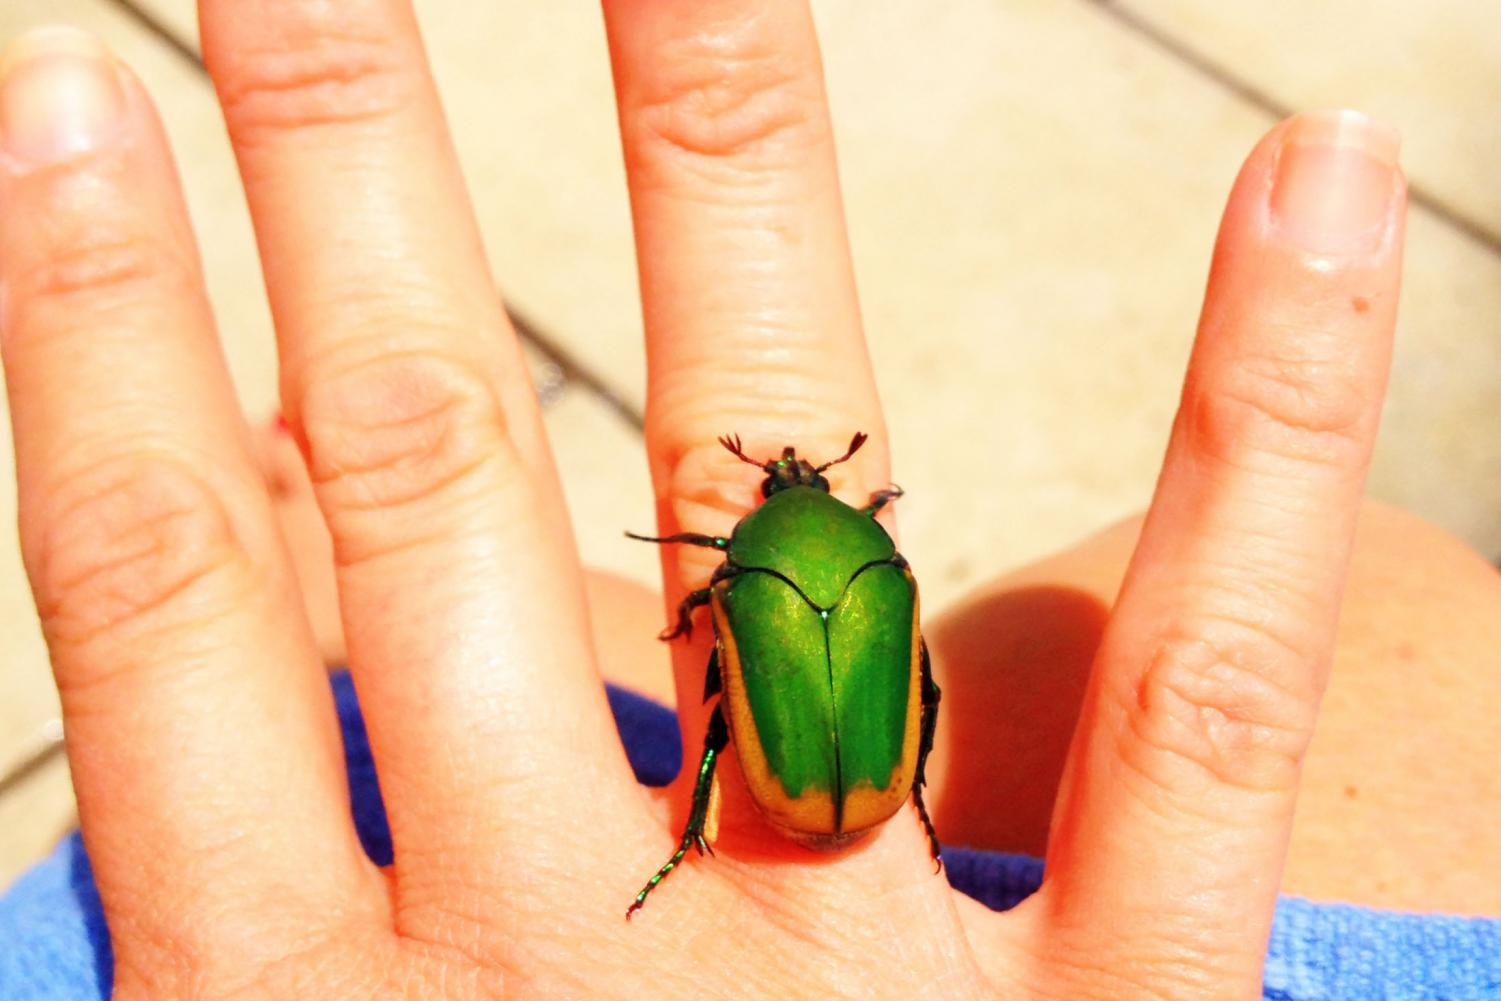 A Figeater beetle lands on a hand in eighth grader Remi Cannon's backyard. This Figeater was found in her backyard. While many people find them scary, the Figeater beetles pose no harm to humans. Photo illustration by Nicole Cannon.